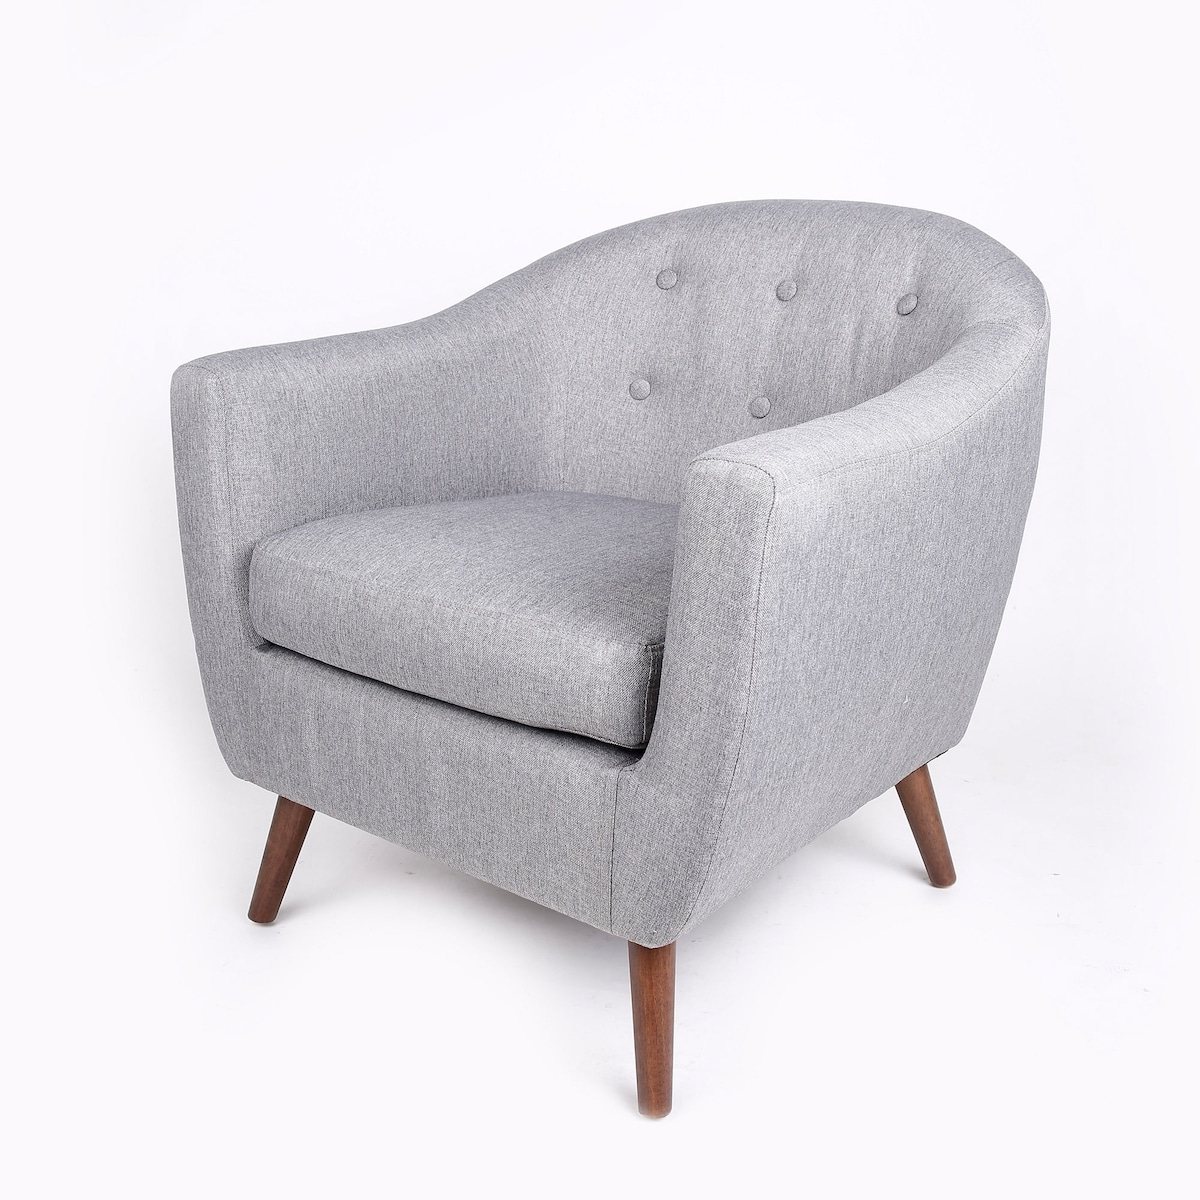 Revolve Swivel Accent Chairs With Well Liked Furniture At Linen Chest (View 3 of 18)